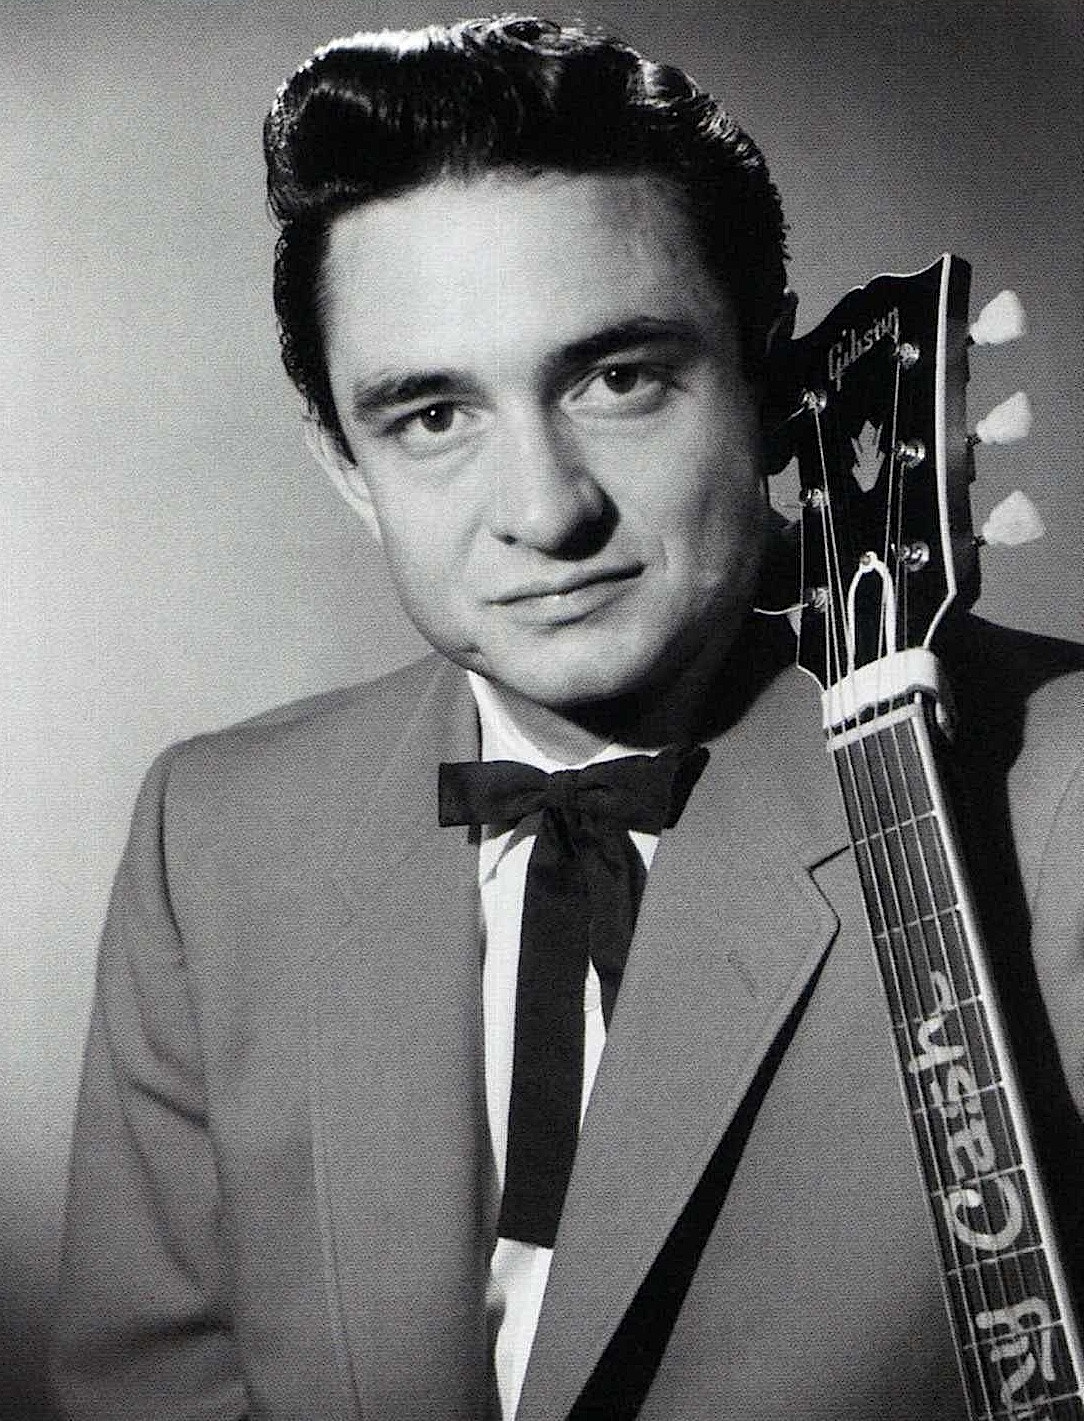 The Perlich Post: Rare early Johnny Cash images & audio ...